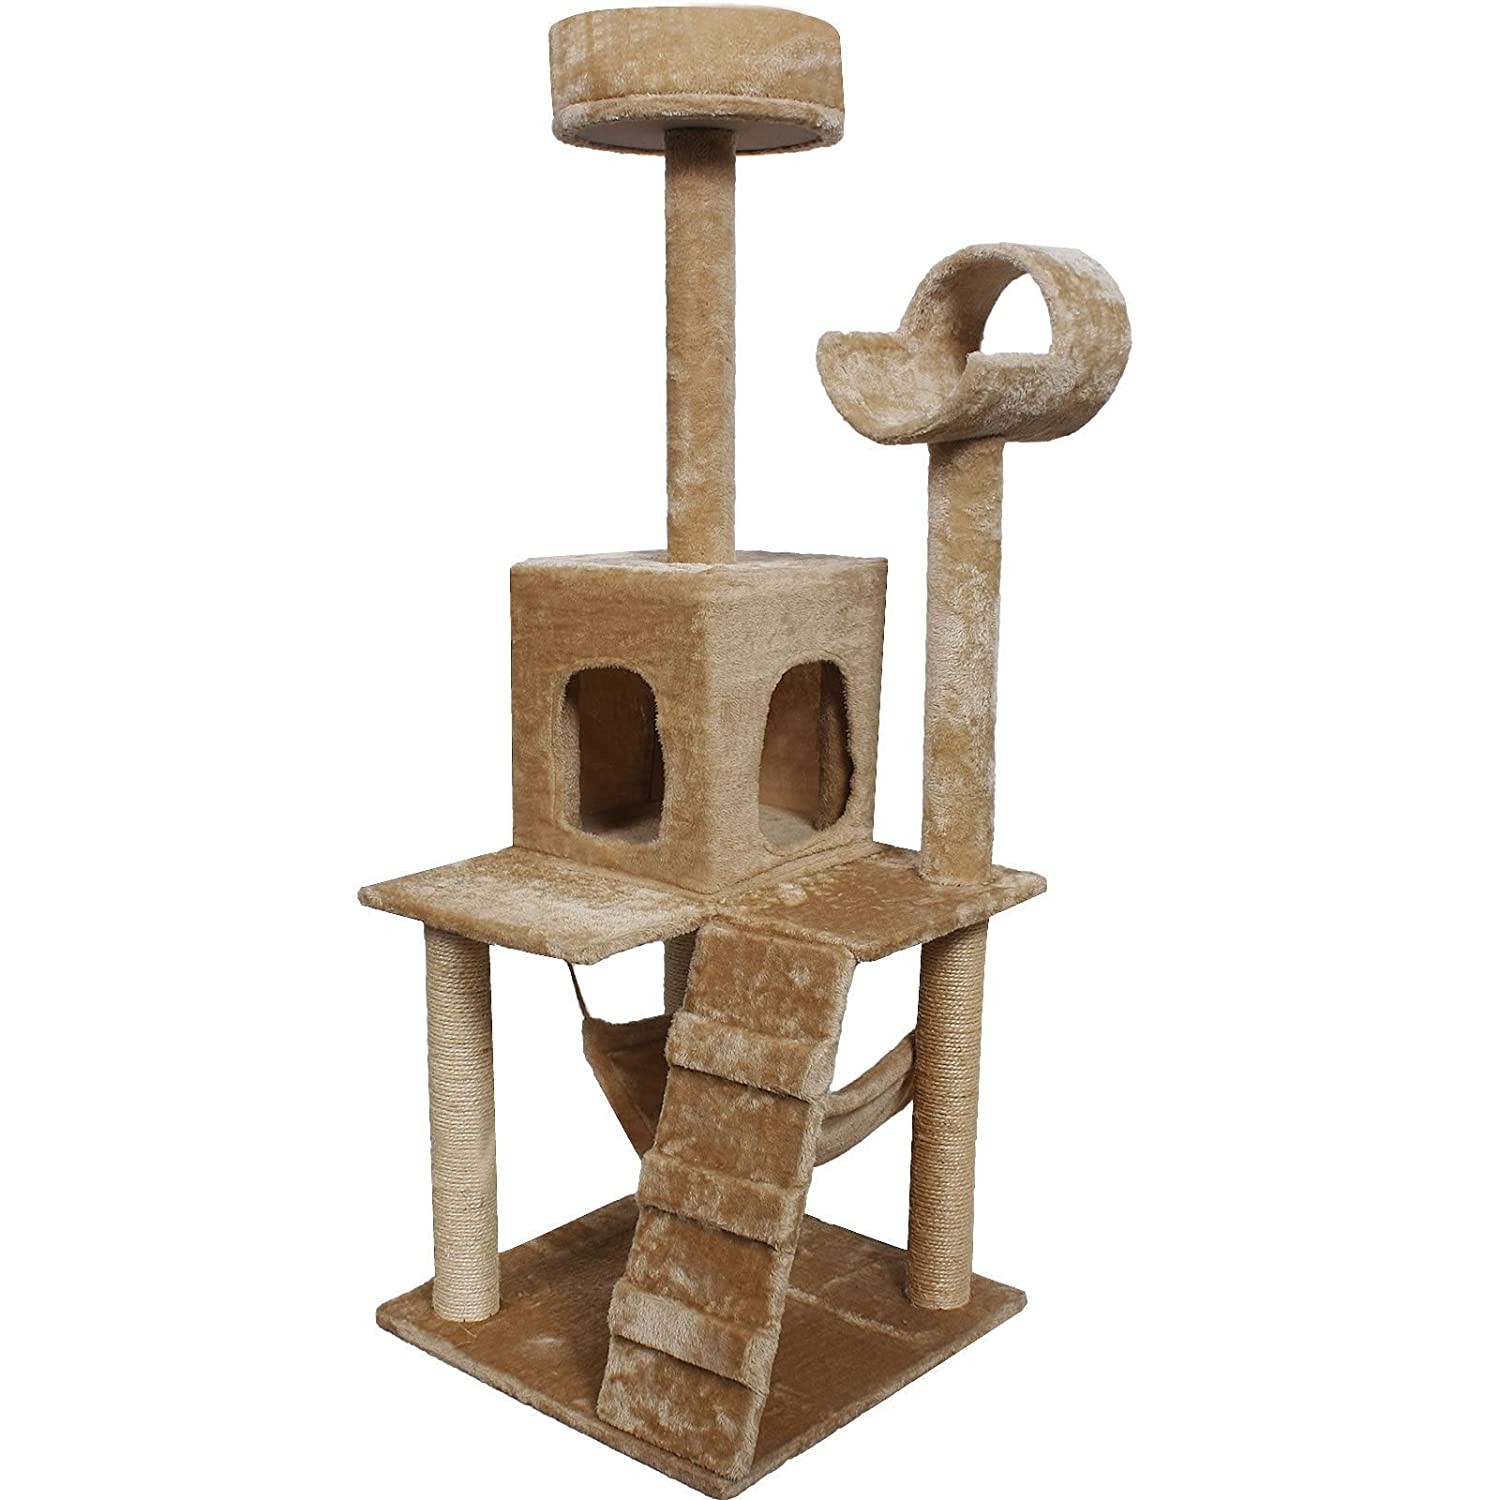 52 Cat Kitty Tree Tower Condo Furniture Scratch Post Pet House Toy Bed Beige by Globe House Products